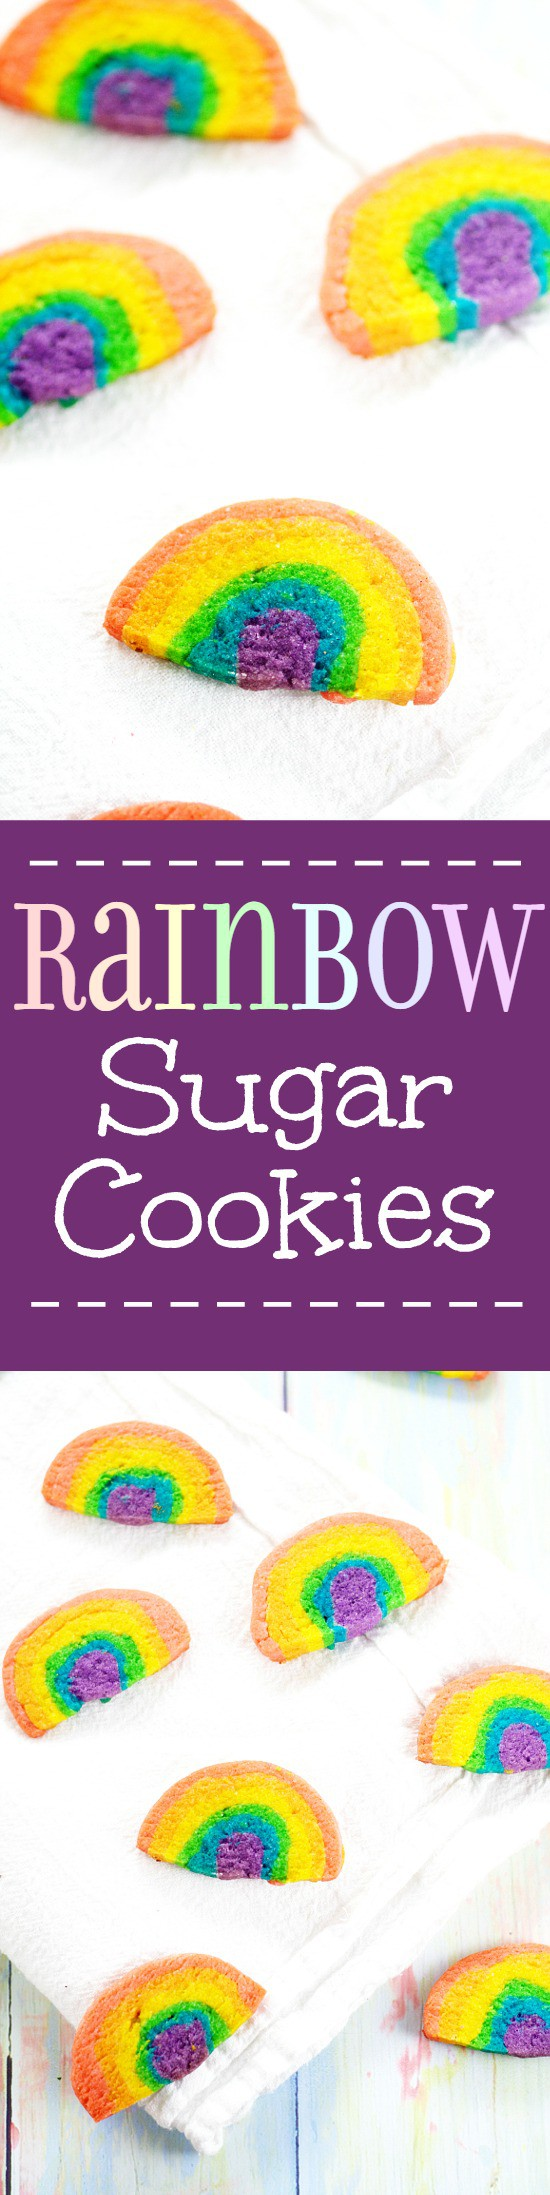 Rainbow Sugar Cookies.Adorable slice-and-bake Rainbow Sugar Cookies that the kids will love. Fun to make AND eat, and perfect for parties and St Patrick's Day. Too cute!